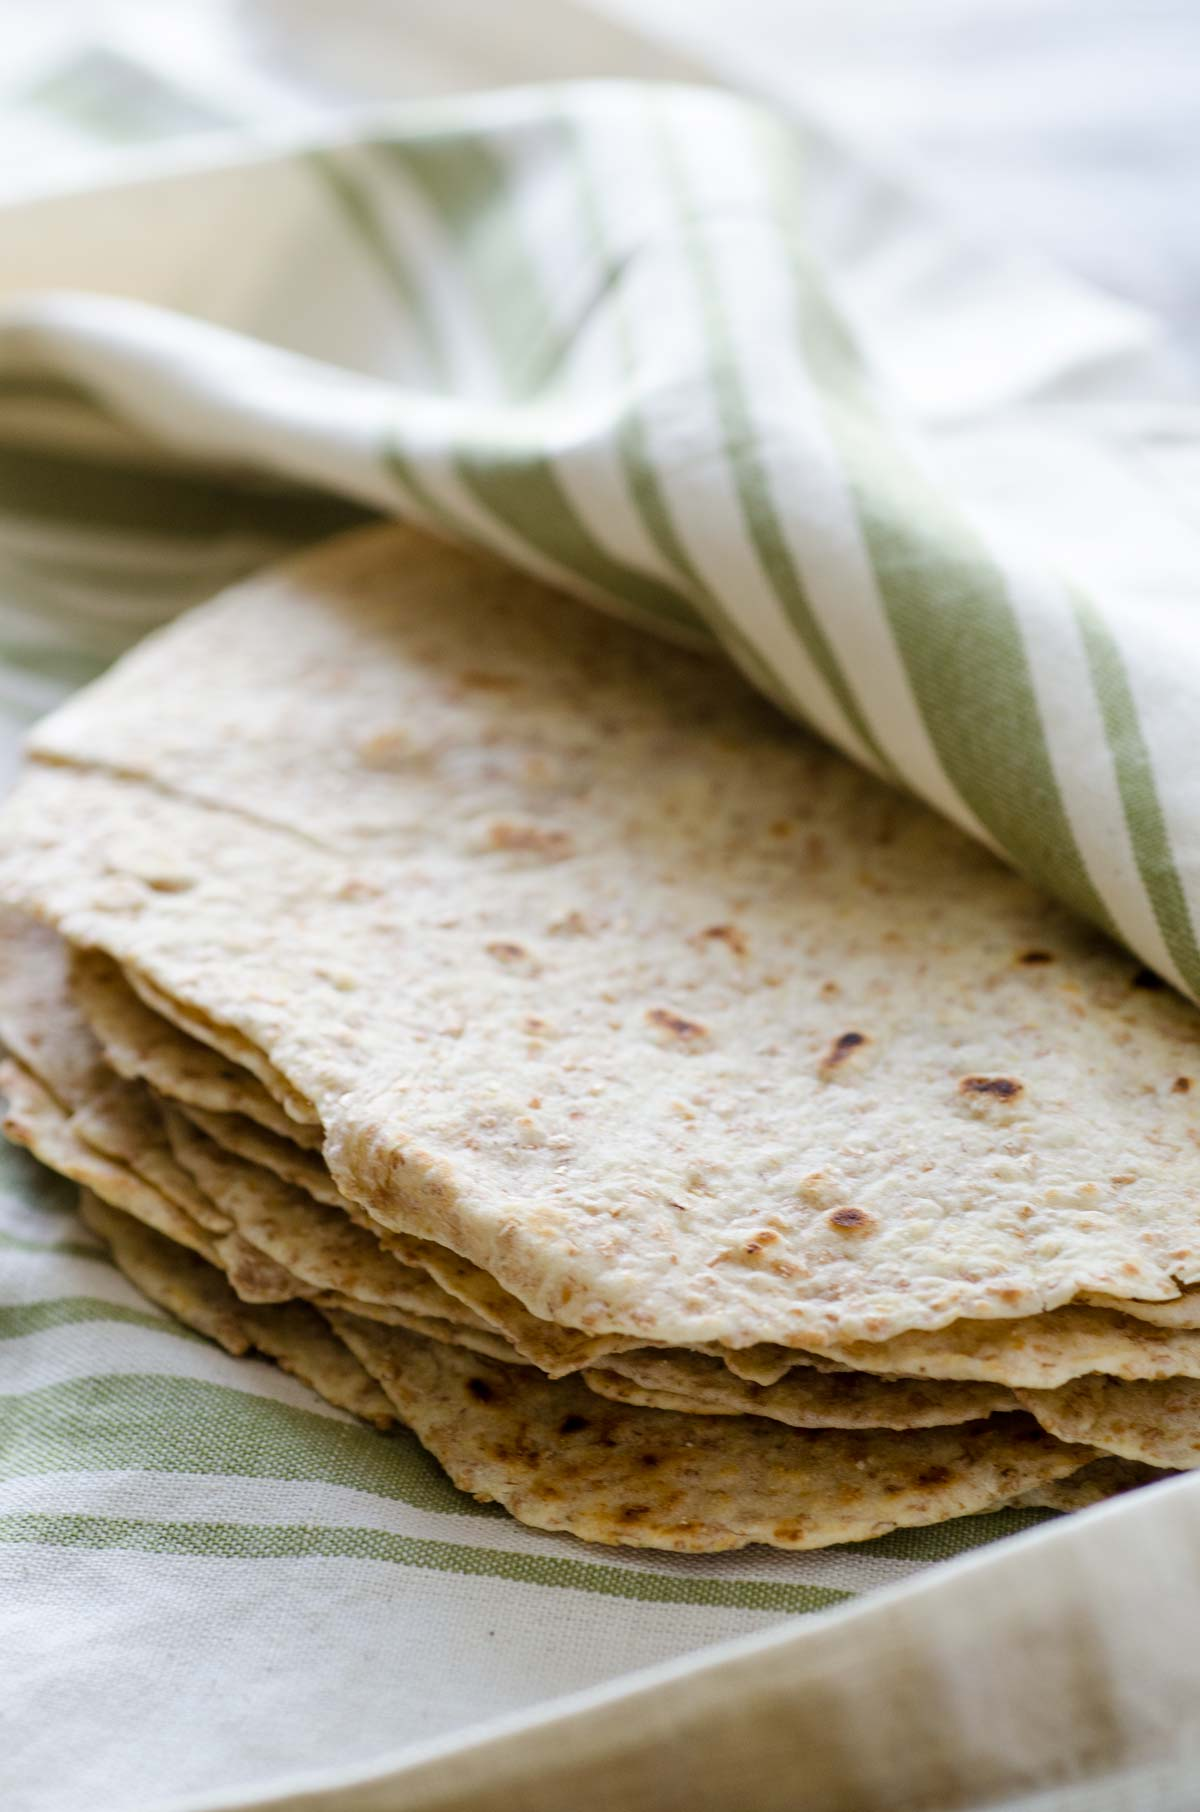 These hearty whole wheat flour tortillas are my paternal grandmother's recipe. These are vegan, delicious, kid approved, and the real deal!